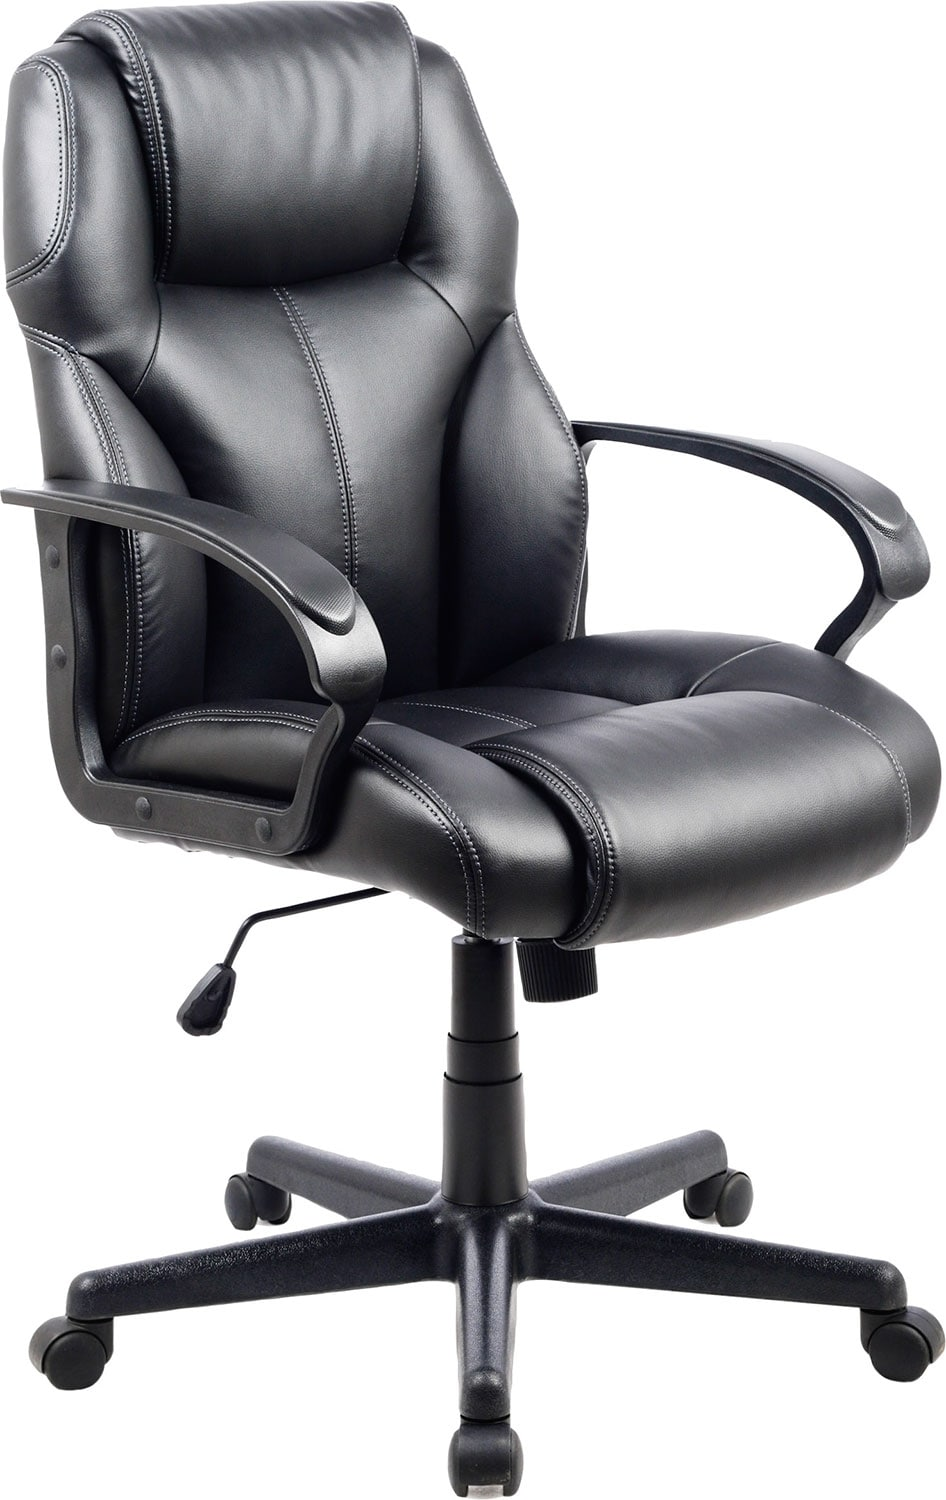 Delson Black Foam-Padded Executive Office Chair